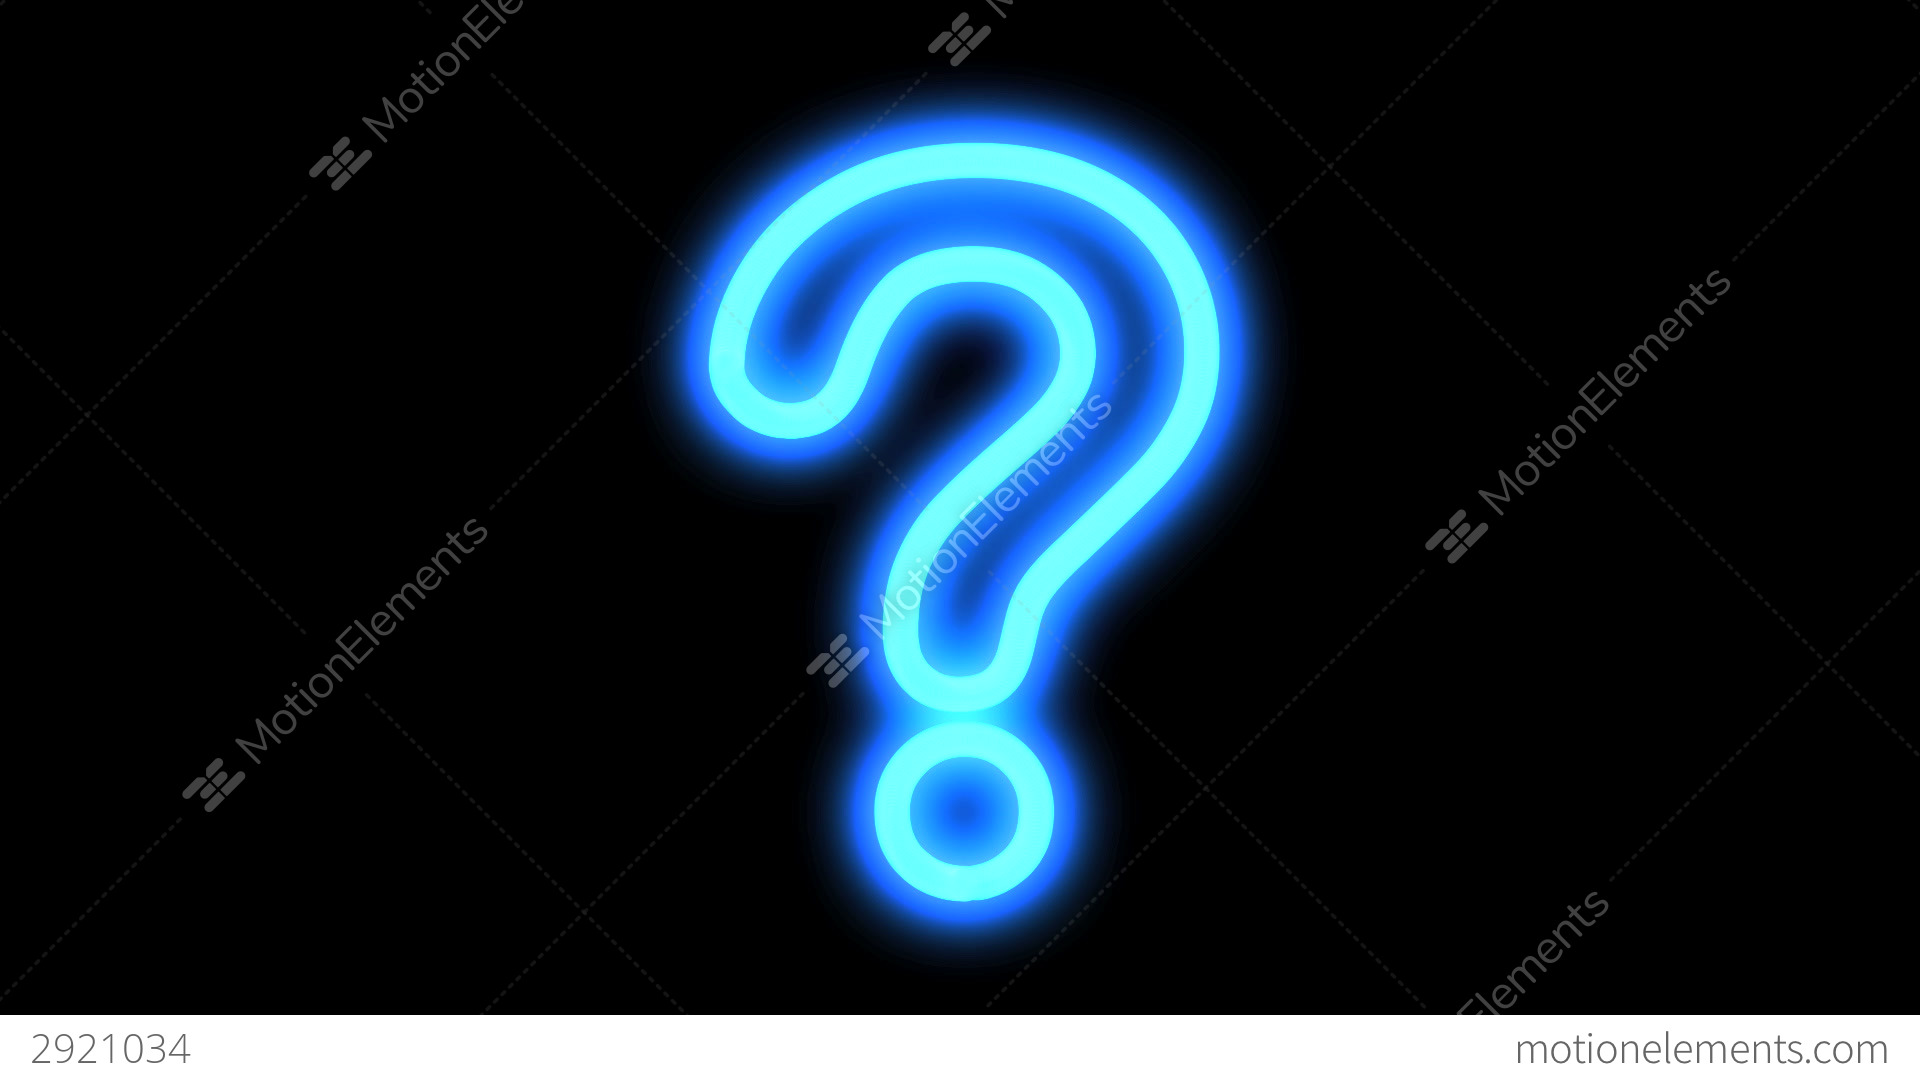 Cute Black Wallpaper Blue Question Mark Stock Animation 2921034